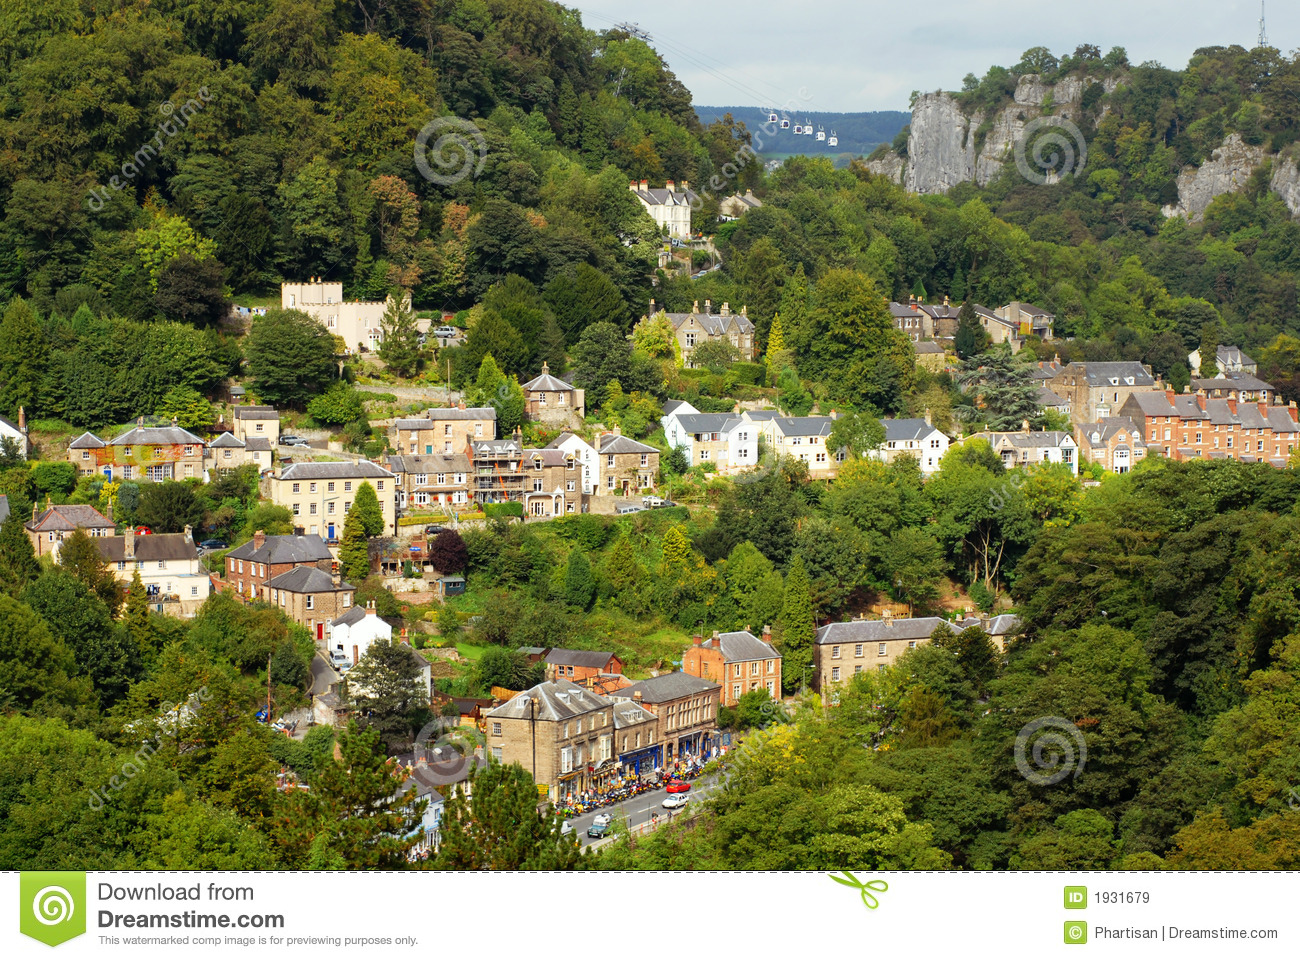 English Country Village Royalty Free Stock Images - Image: 1931679